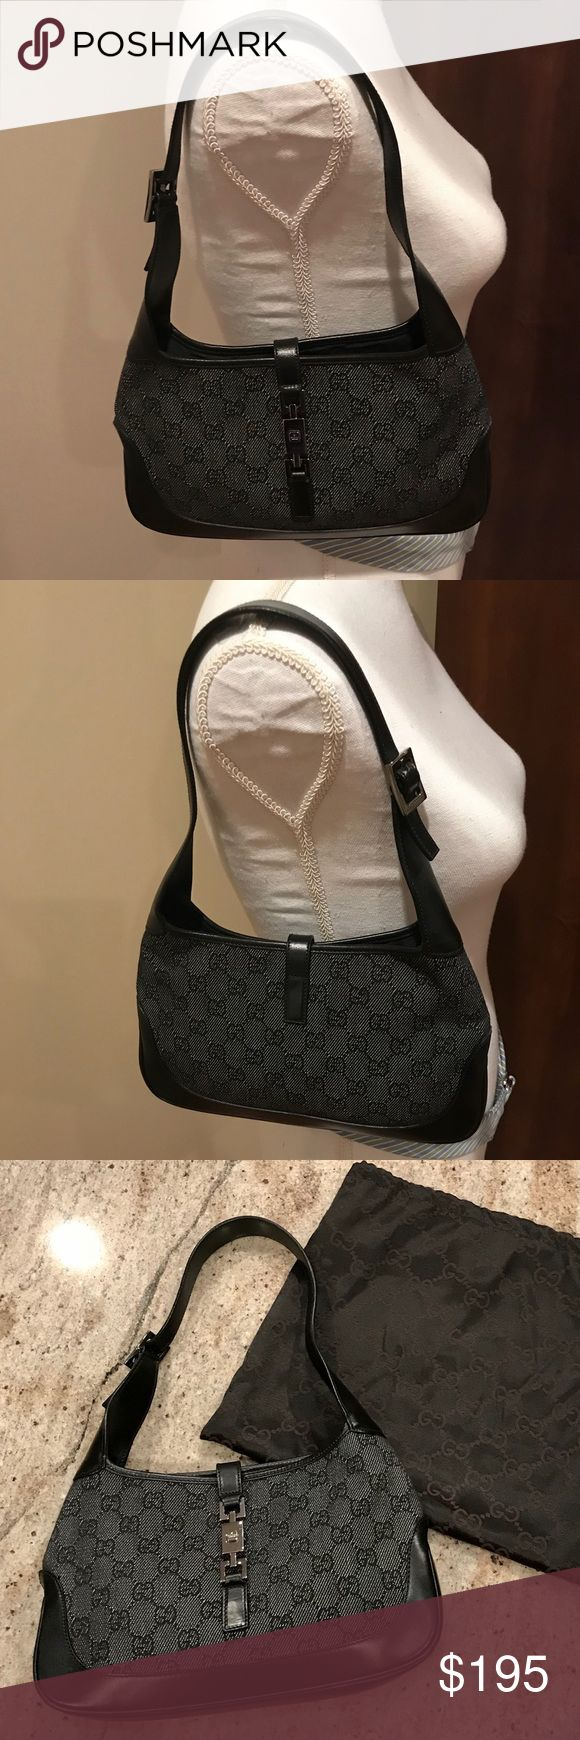 """Authentic Gucci purse with dust bag Authentic Gucci black purse 10"""" width and 6"""" in height excellent condition tags removed never used Gucci Bags Shoulder Bags #blackguccipurse"""